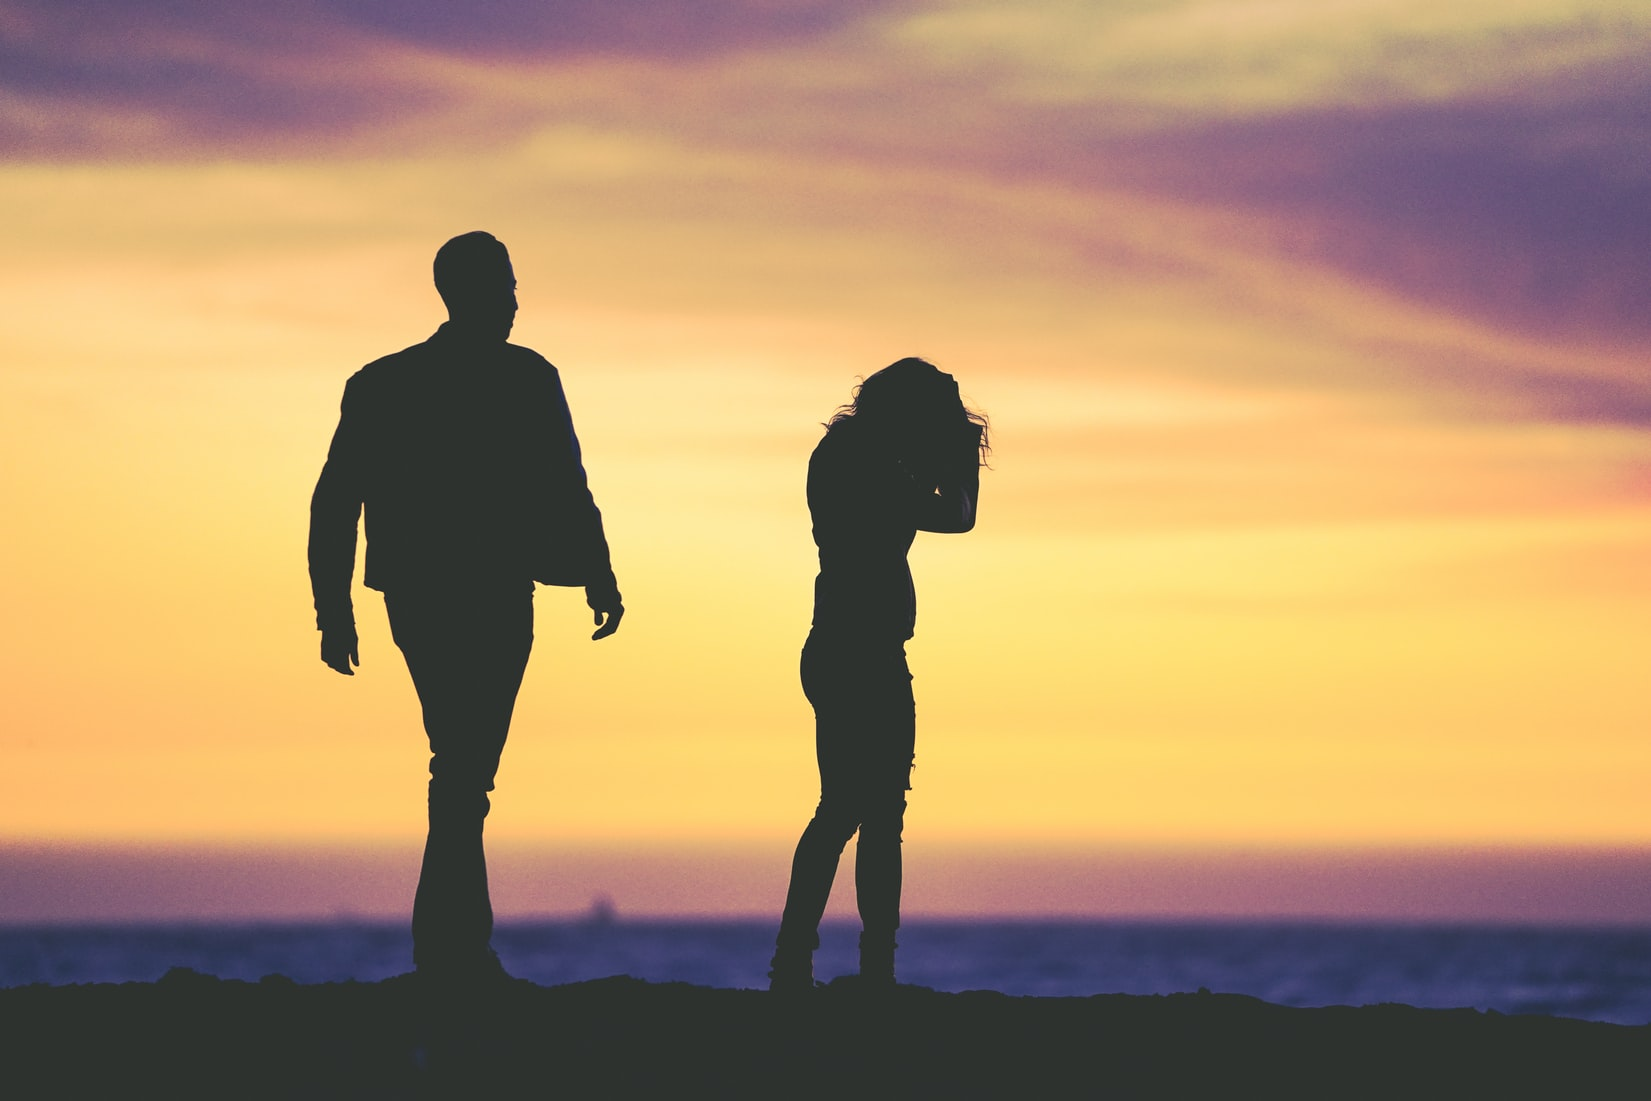 Silhouette of man and woman crying under yellow sky